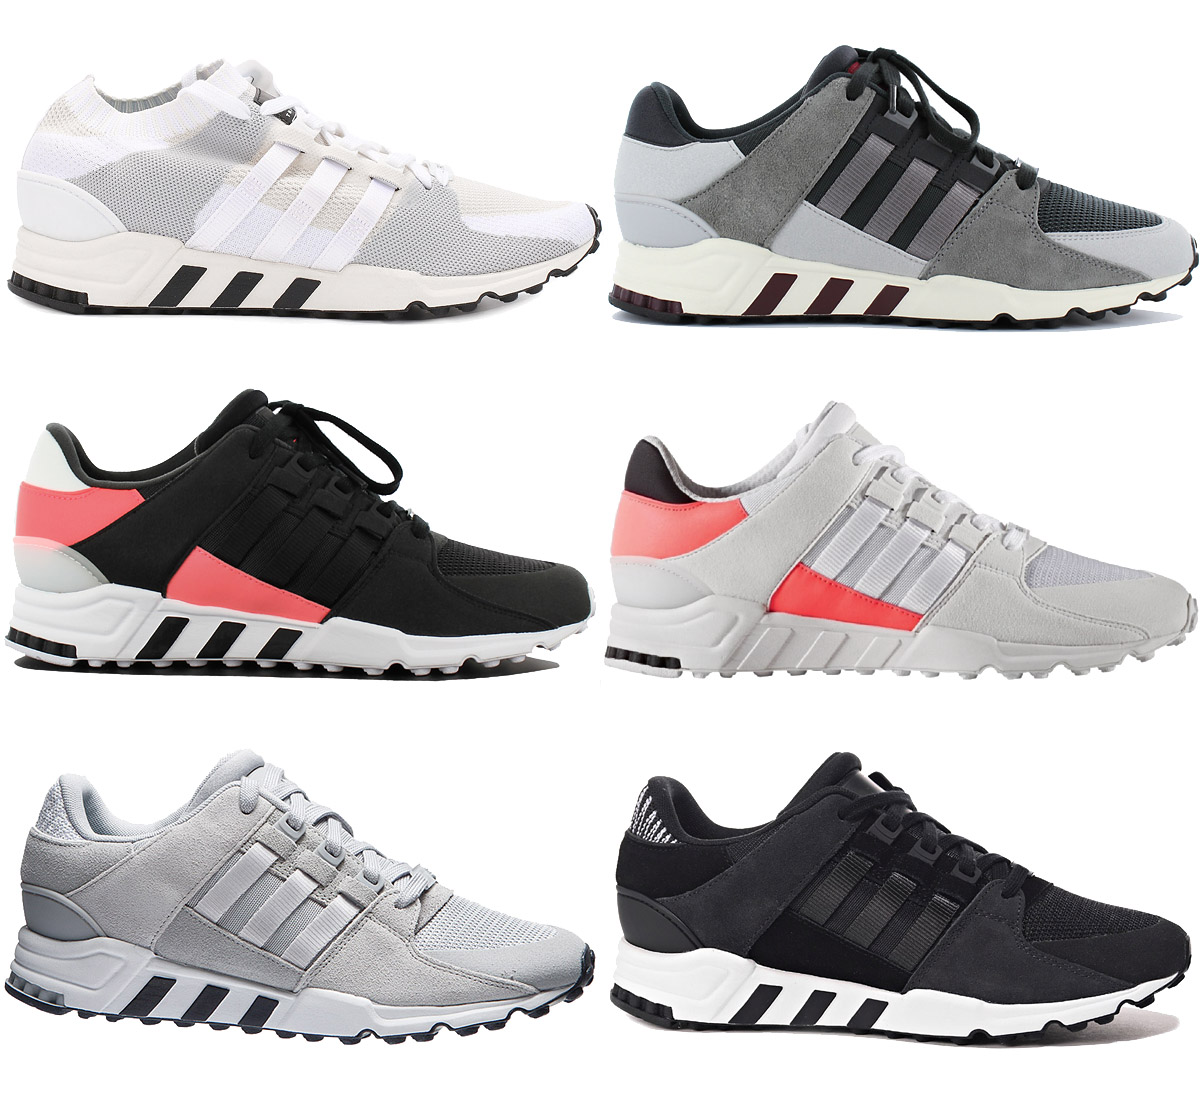 new styles ba46b 3569f Details about Adidas Originals Equipment Support RF Torsion Men's Shoes  Sneakers Retro EQT